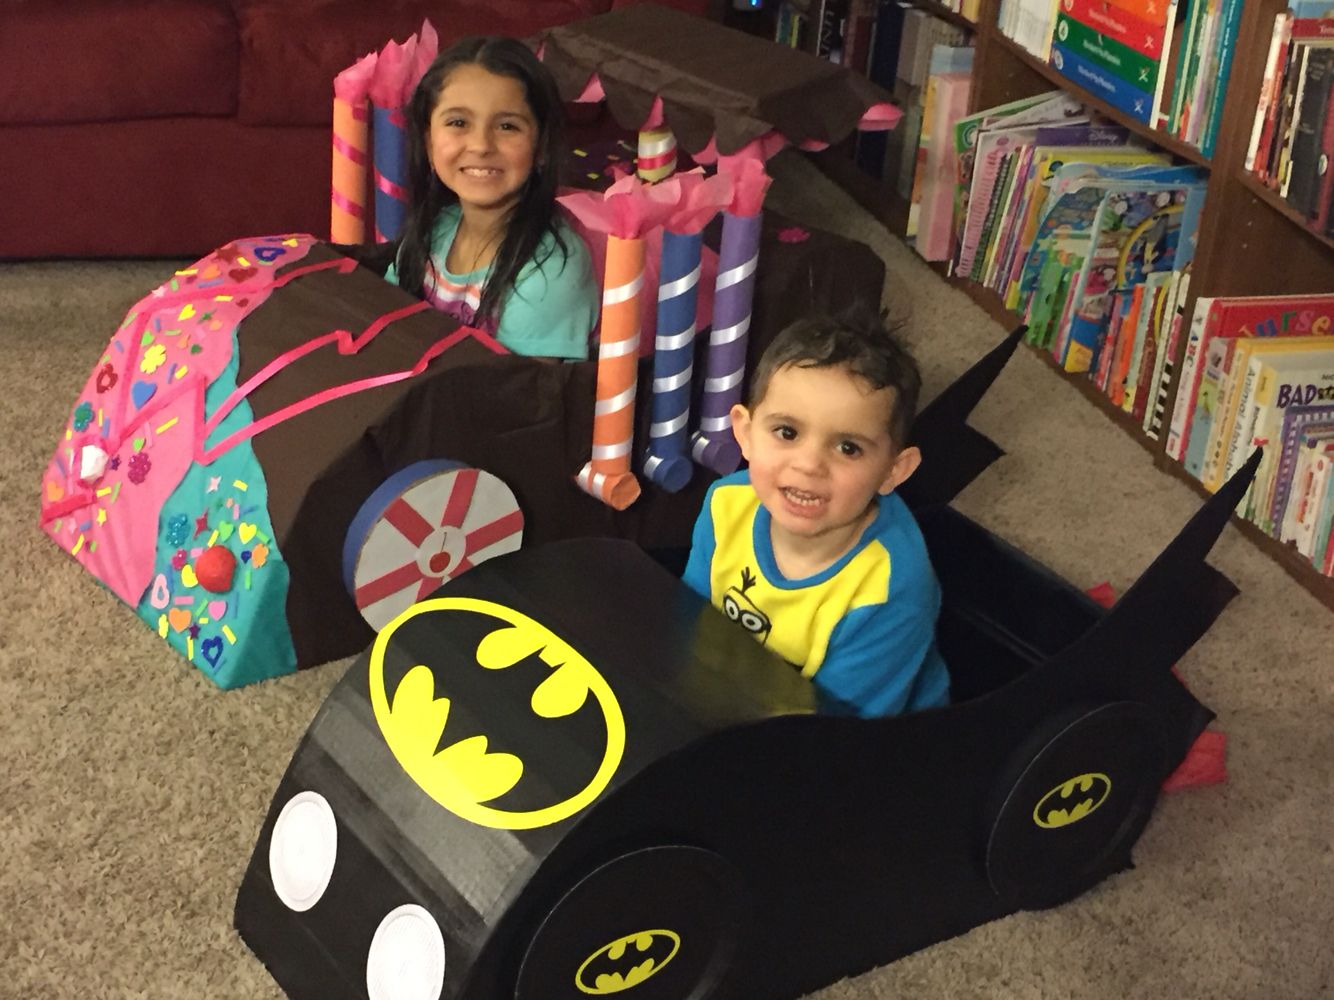 10 Ideas About Cardboard Box Cars On Pinterest: Cardboard Box Cars For Awanas Drive In Movie Night!